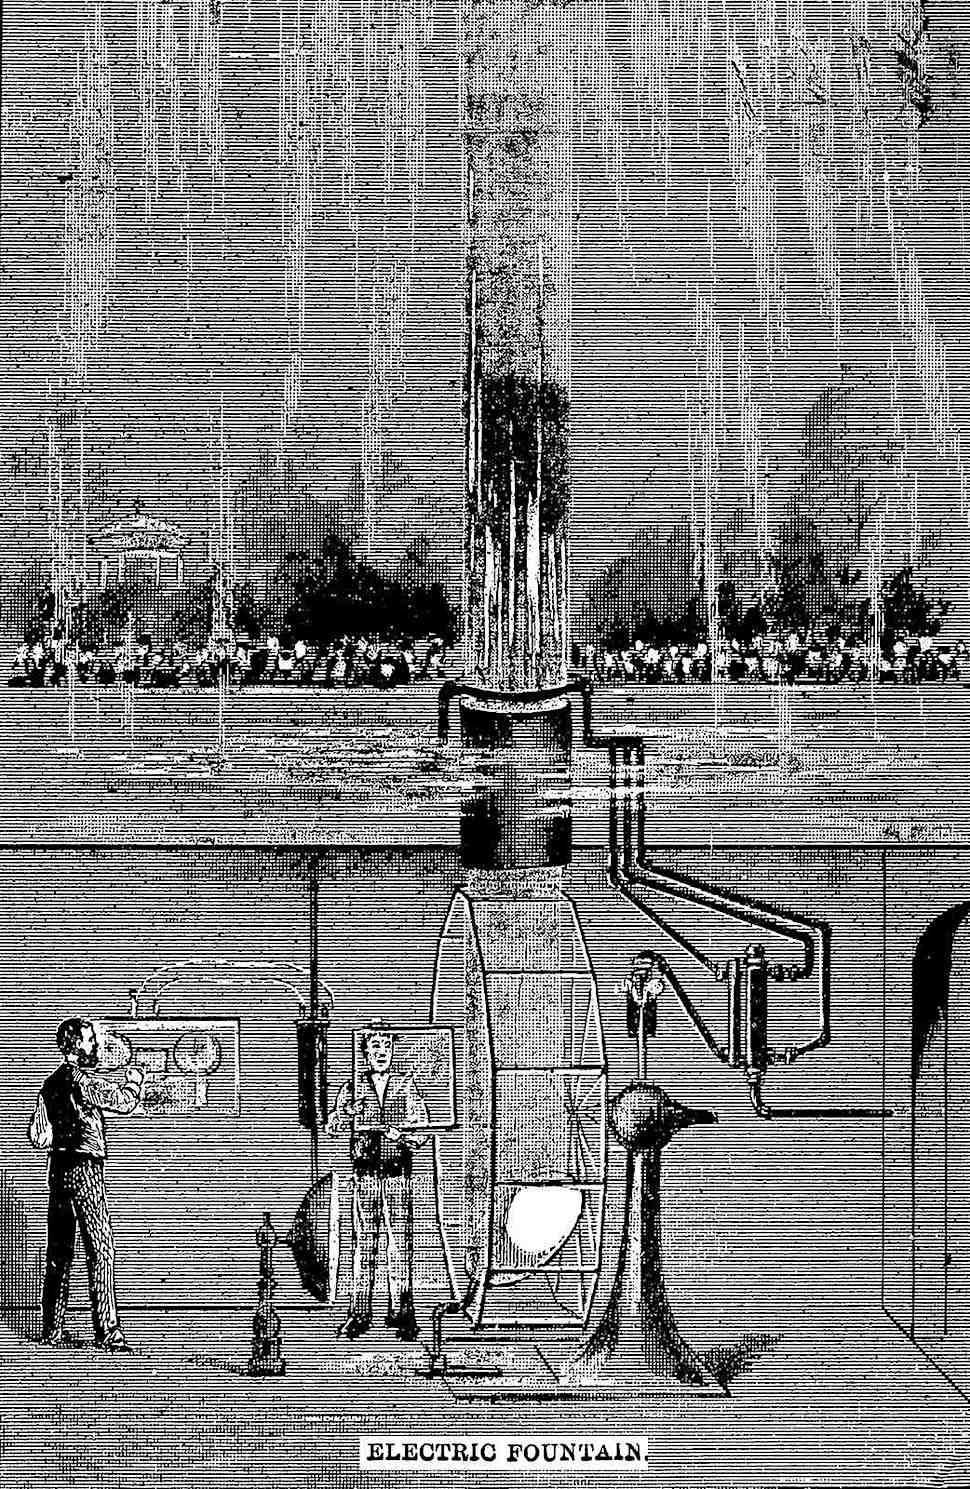 electric fountain lights, 1913 color effects projected up through a water fountain